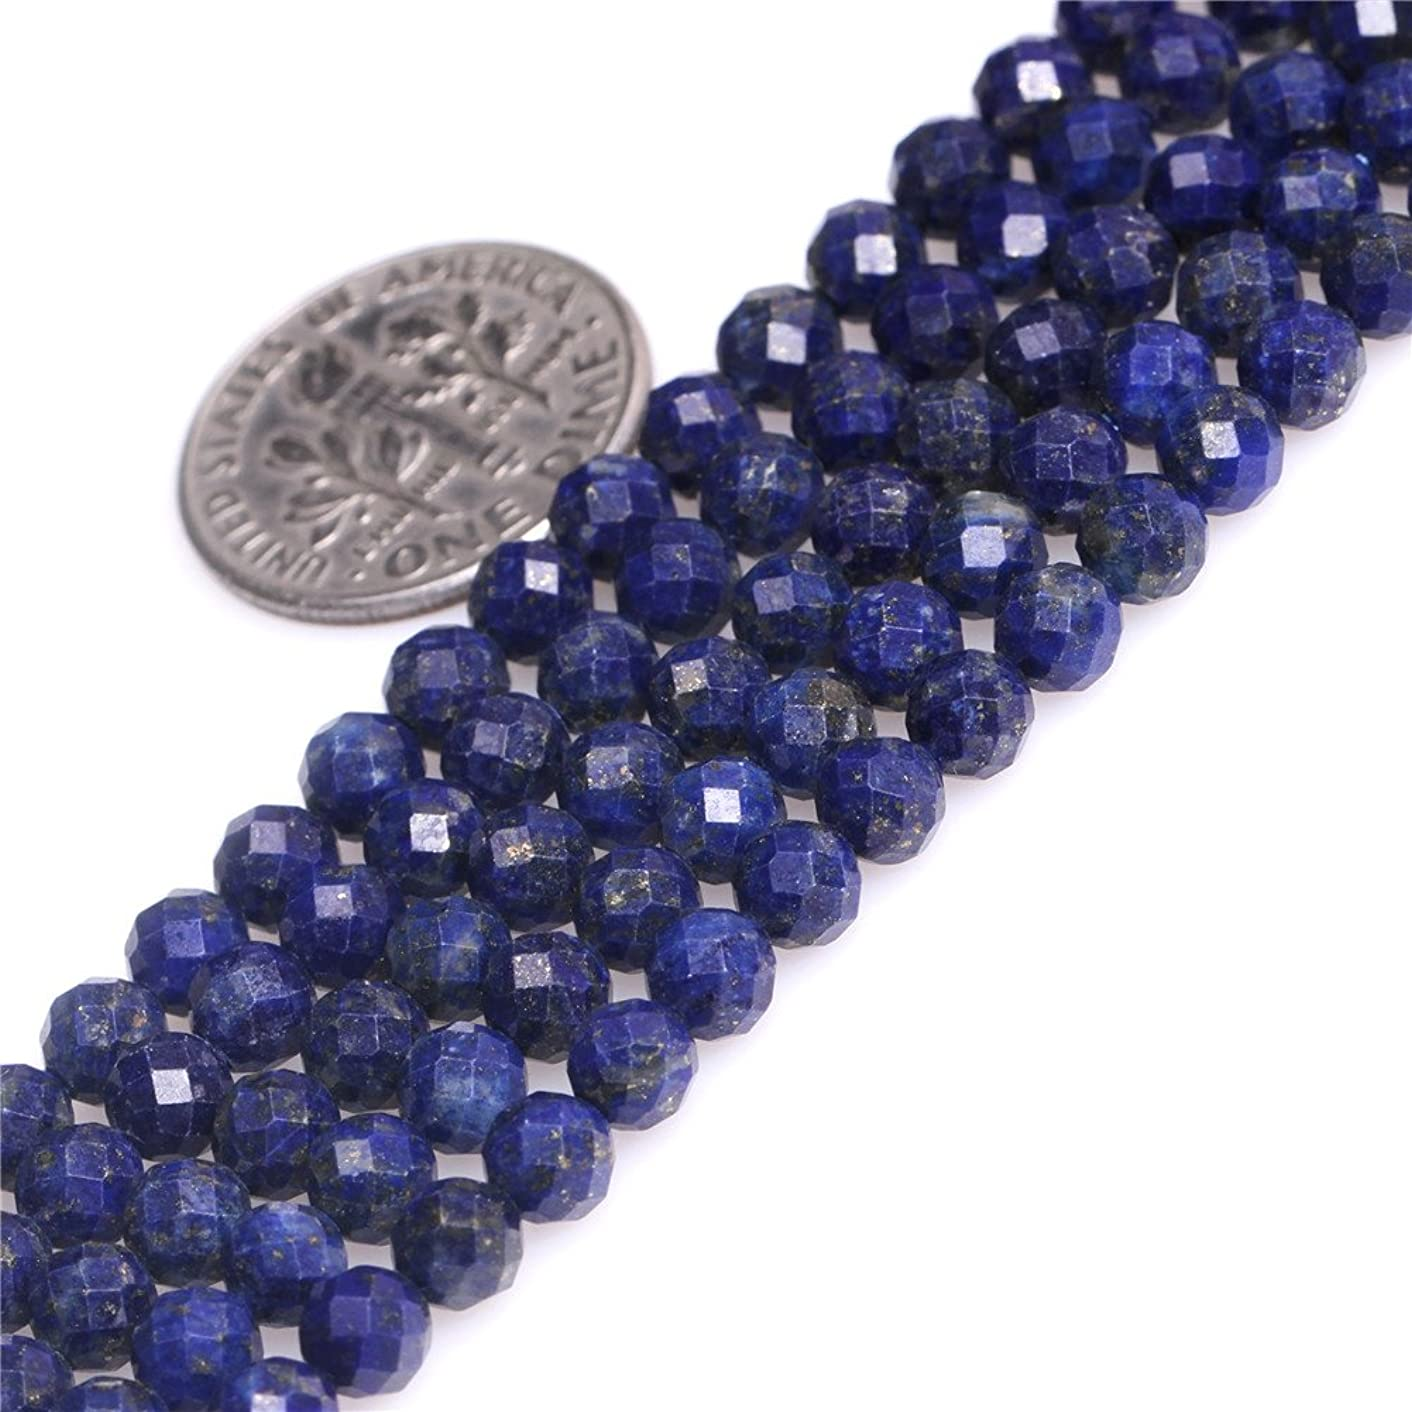 5mm Natural Blue Lapis Lazuli Gemstone Semi Precious Round Faceted Beads for Jewelry Making